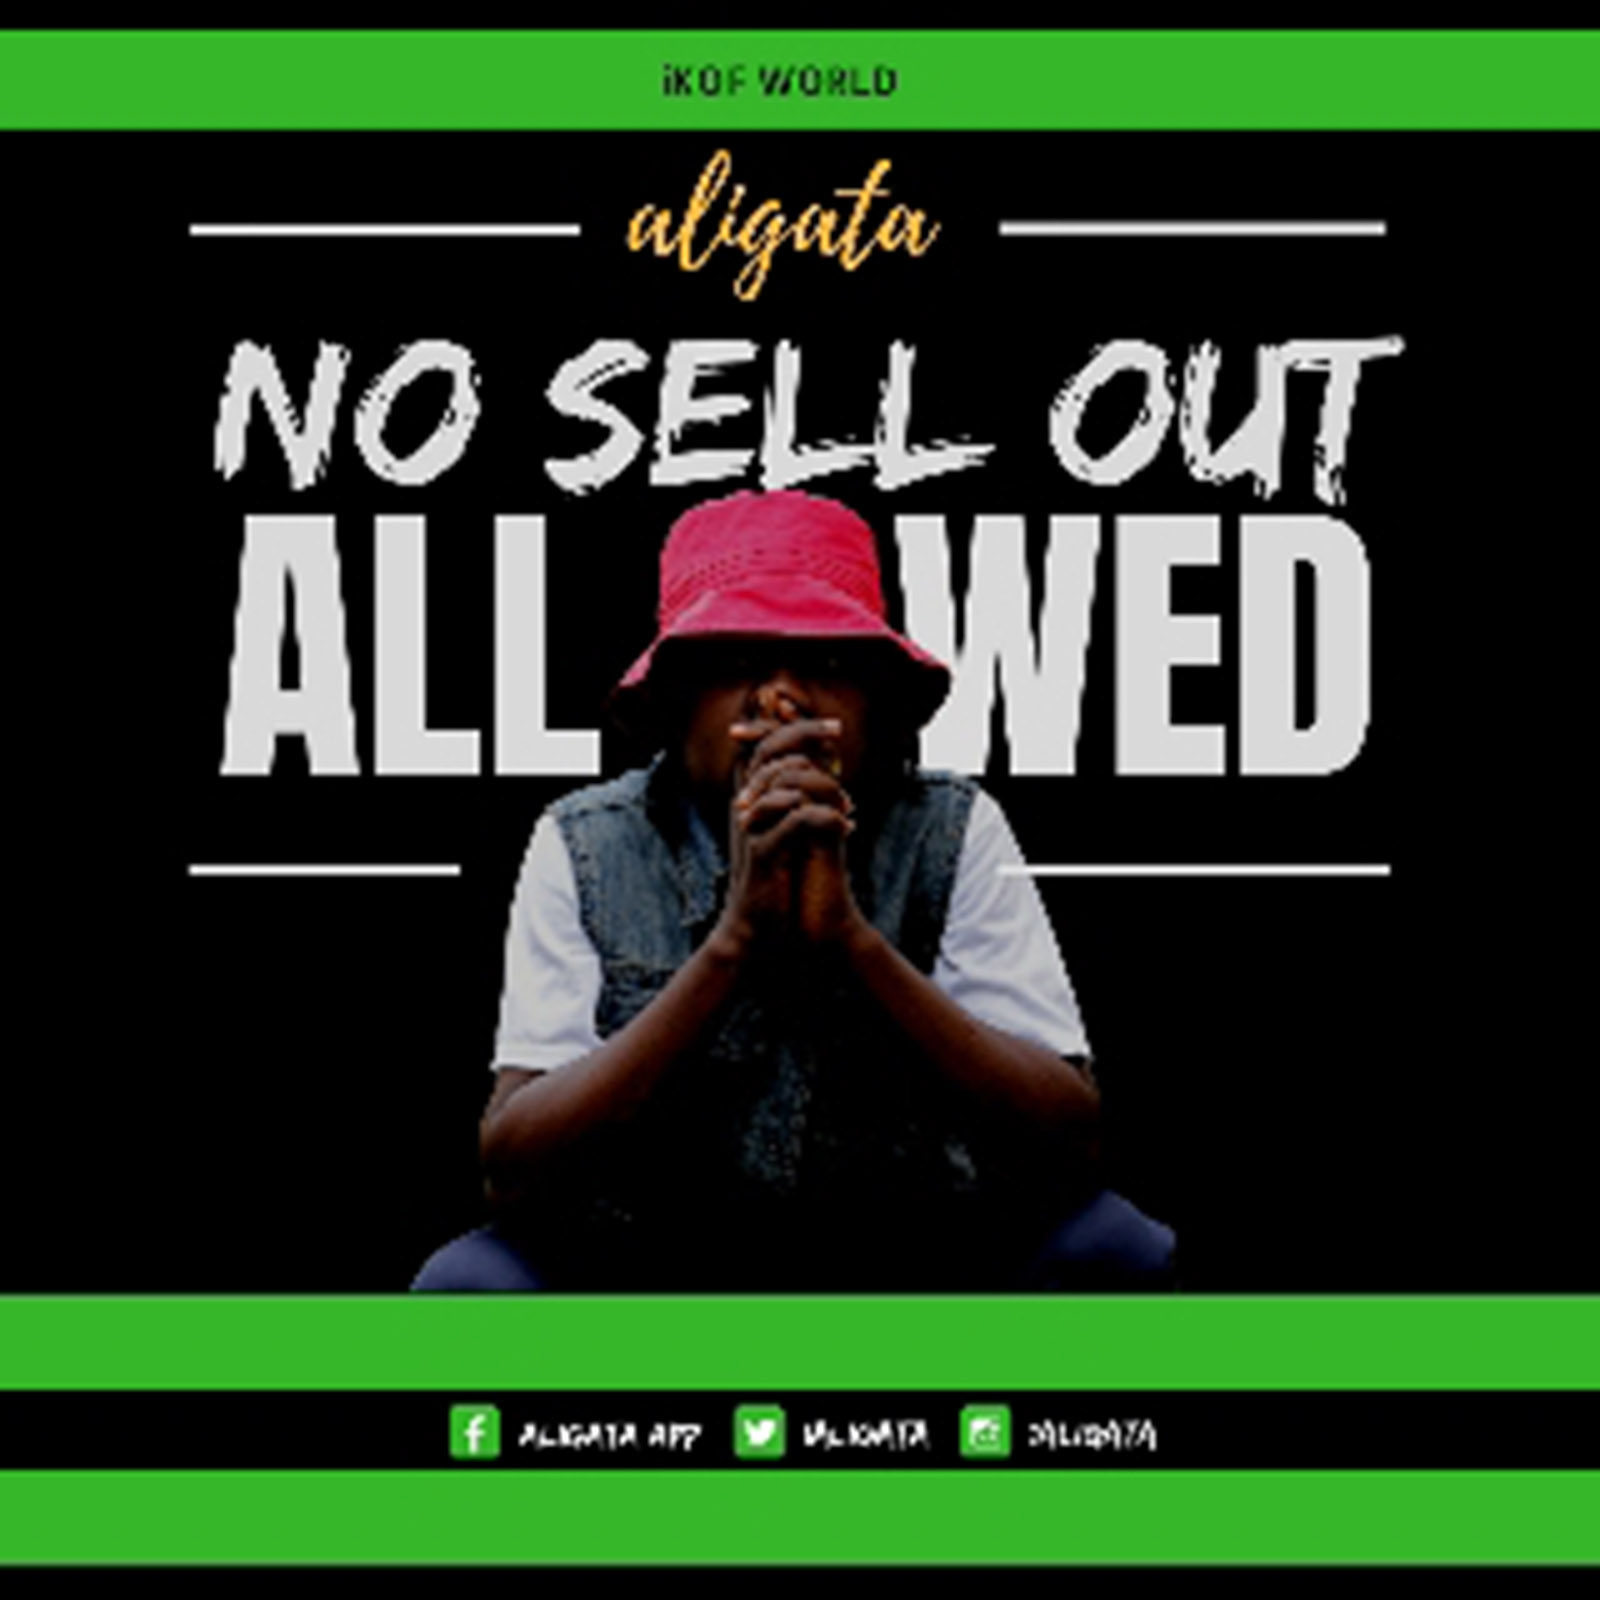 No Sell Out Allowed by Aligata